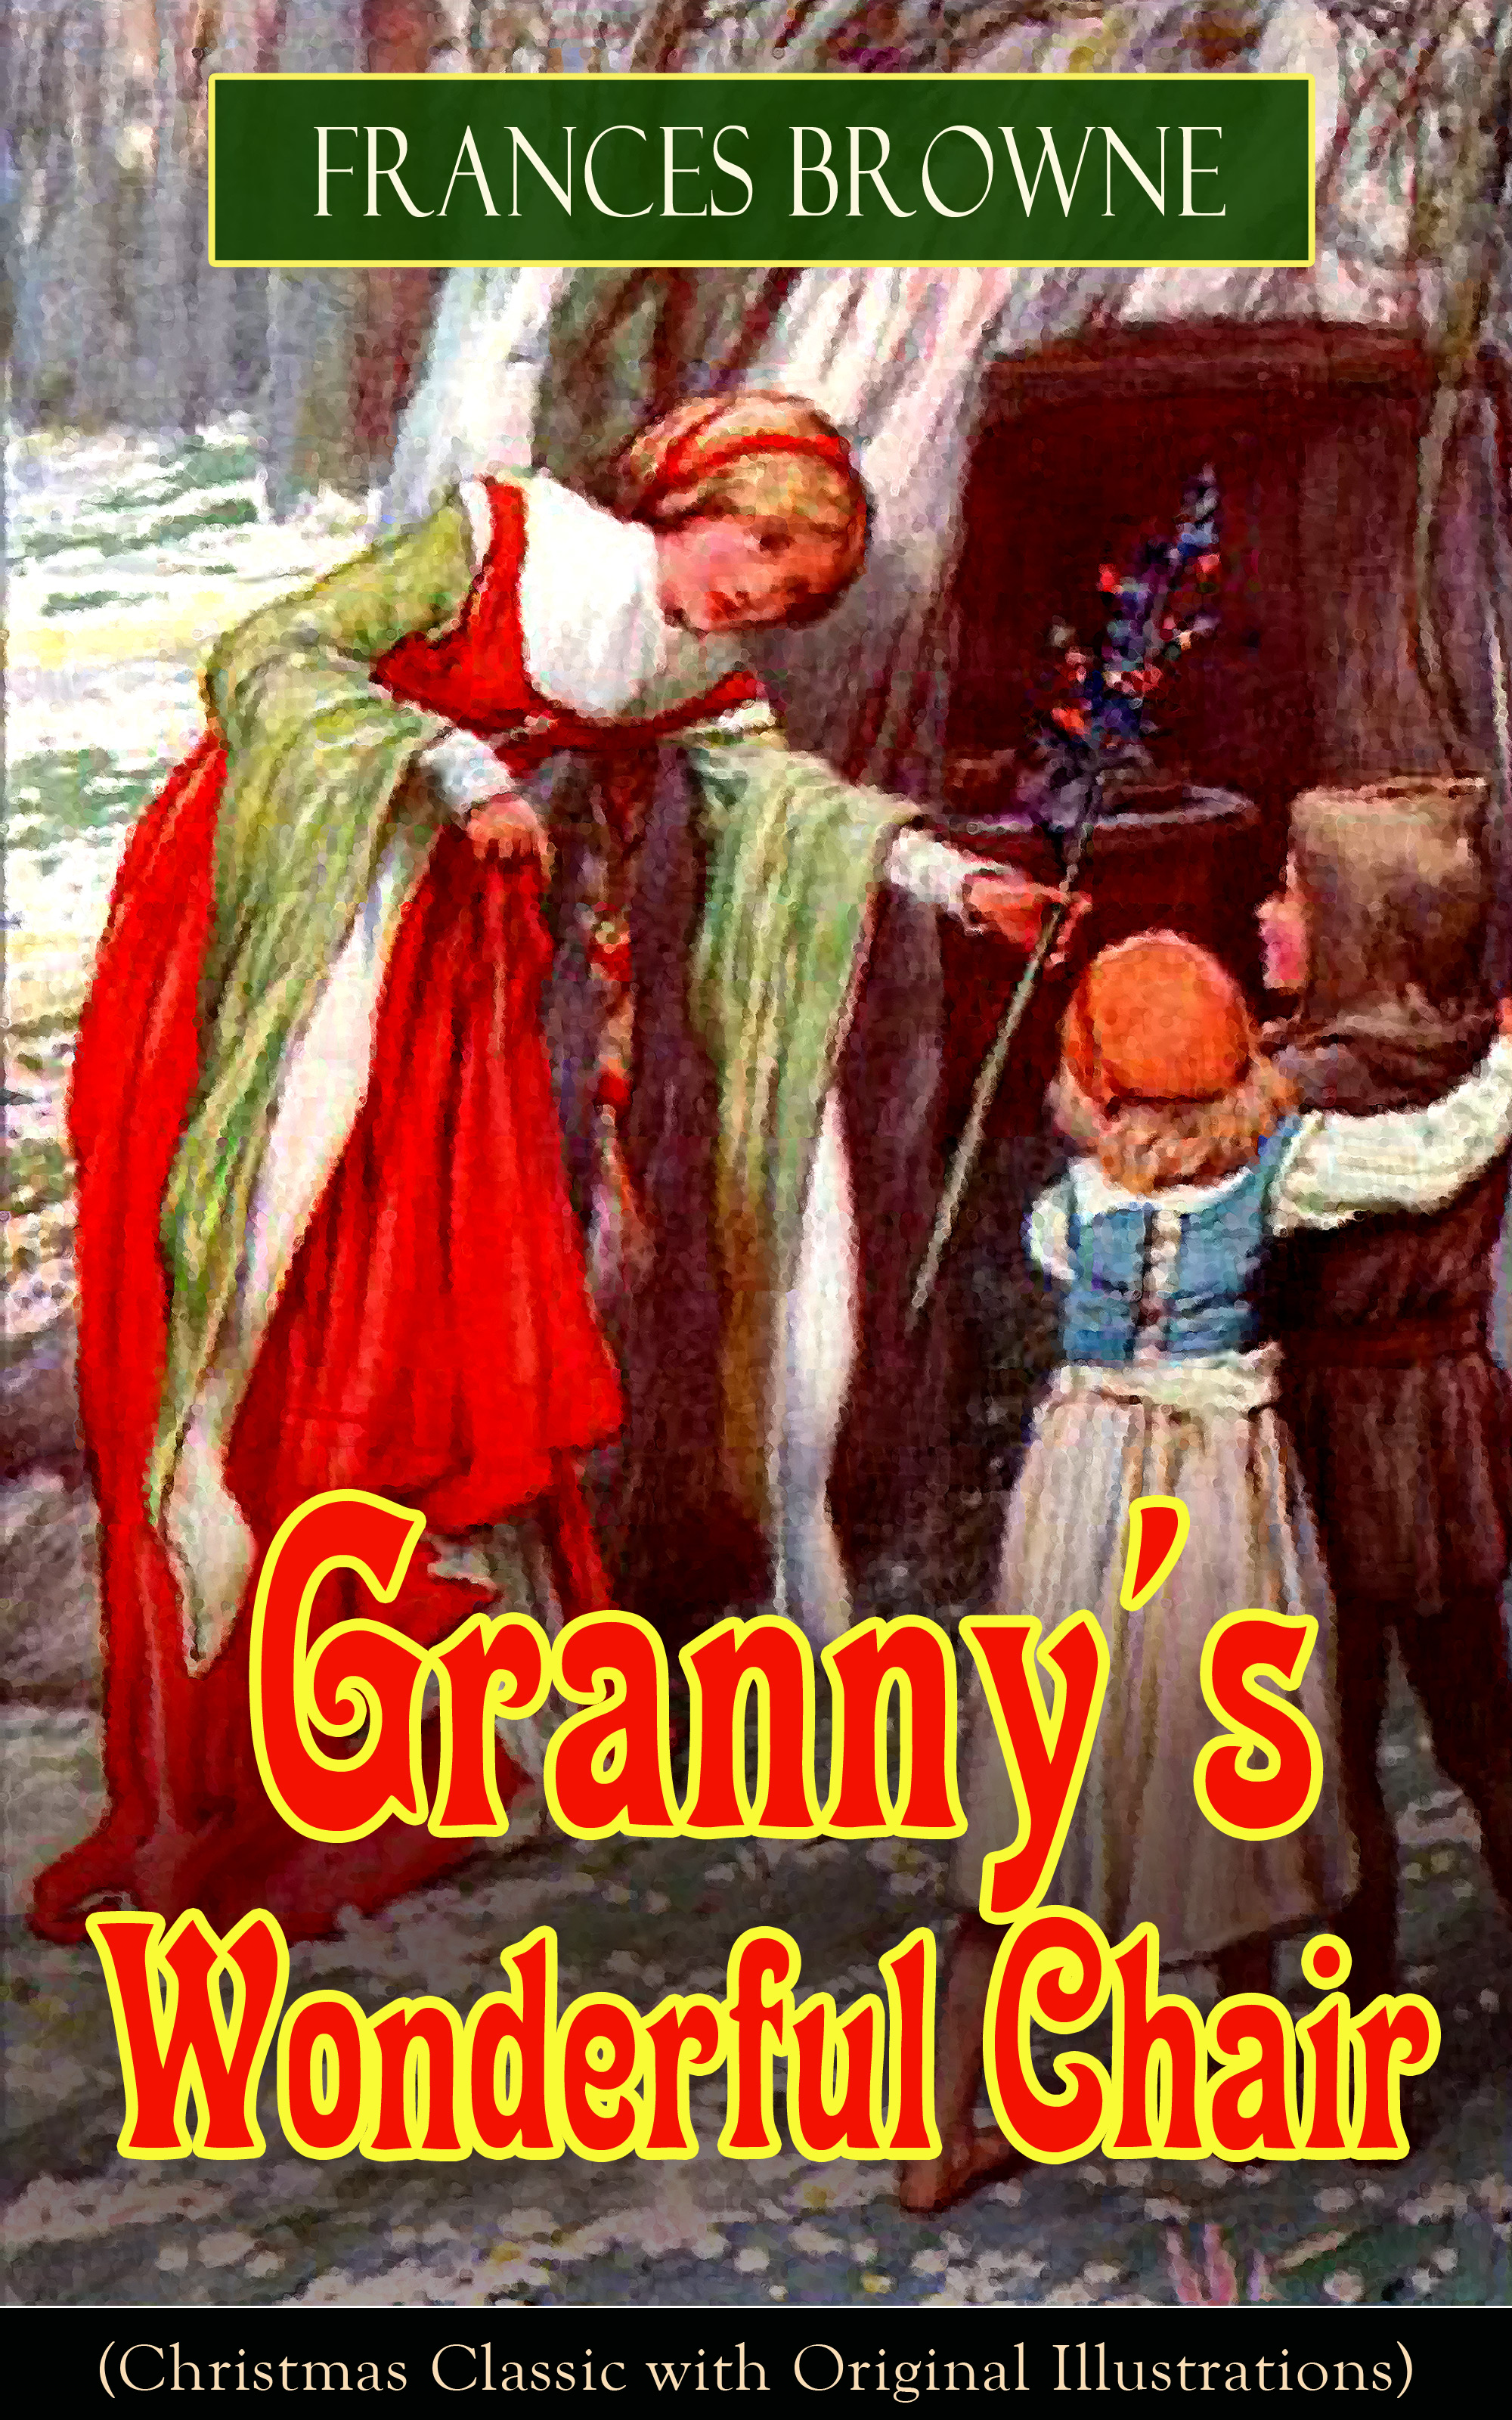 Granny's Wonderful Chair (Christmas Classic with Original Illustrations)